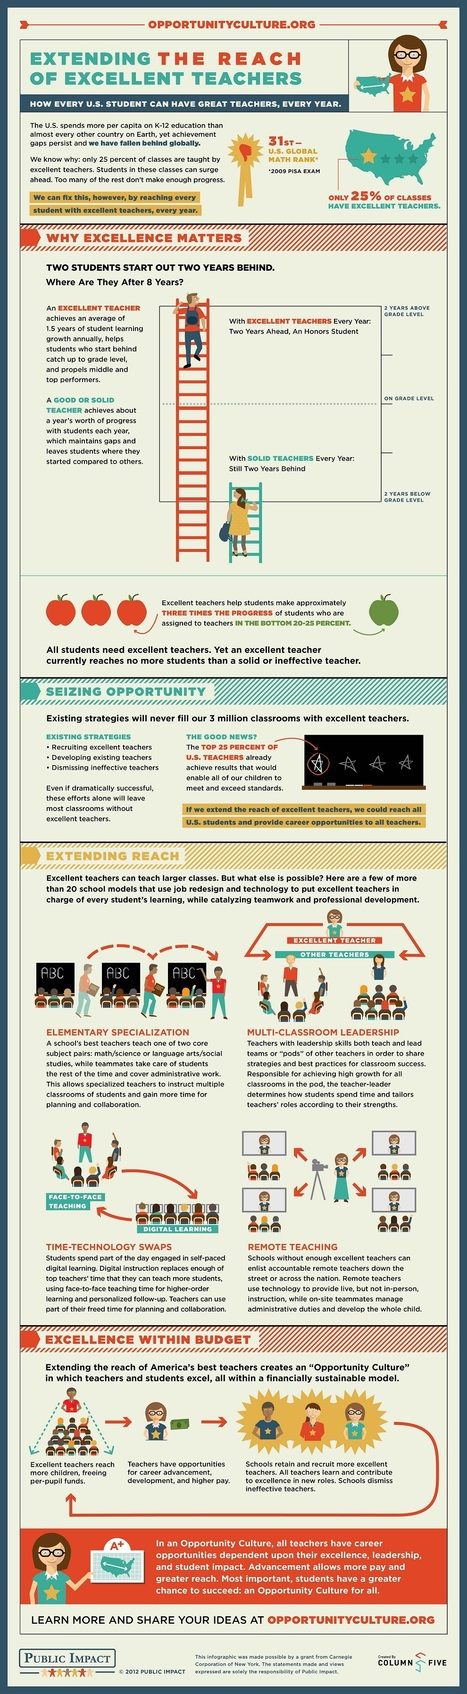 How To Extend The Reach Of Excellent Teachers [Infographic] | Aprendiendo a Distancia | Scoop.it